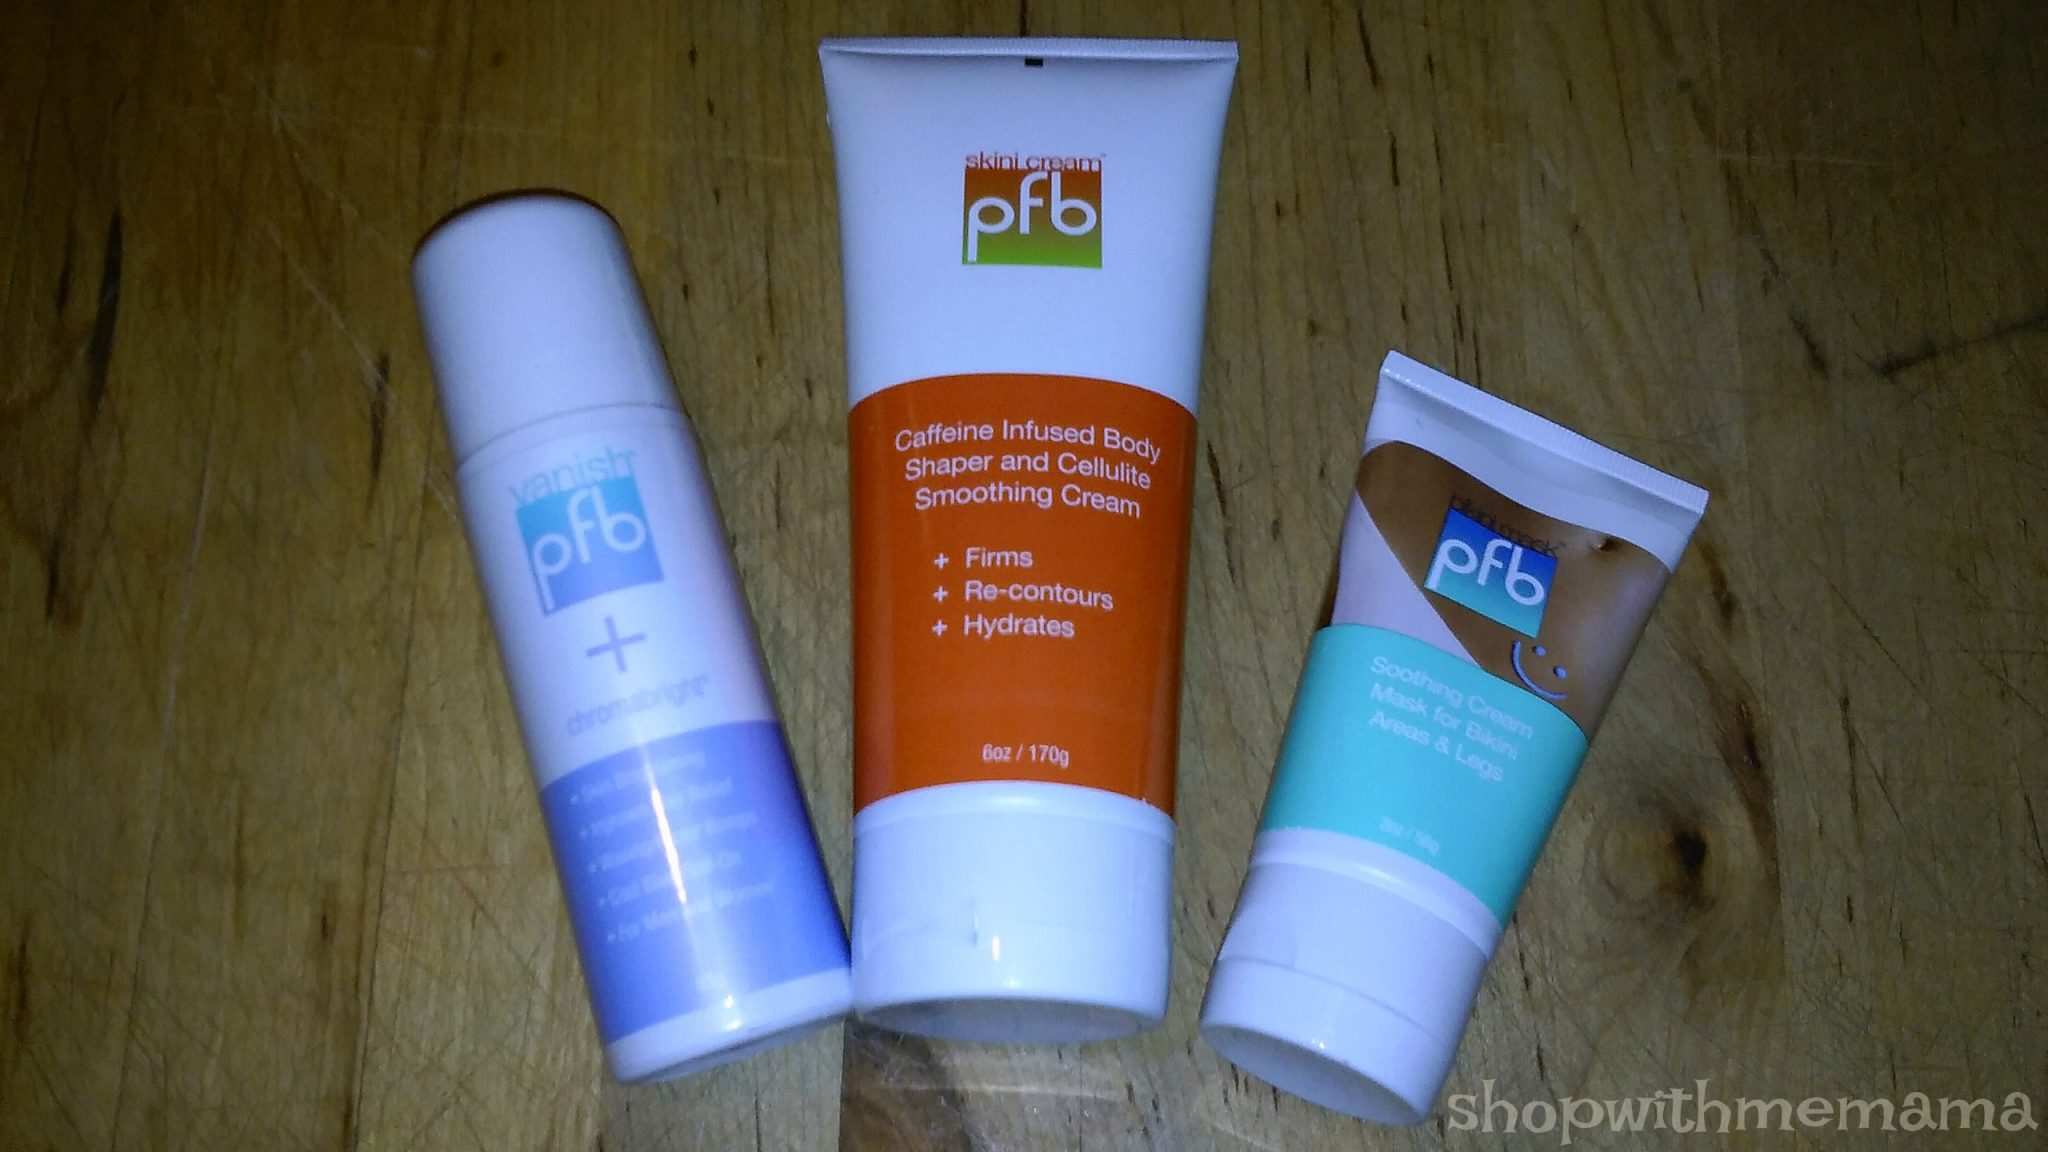 Just 4 Steps To Beautiful, Smooth Skin